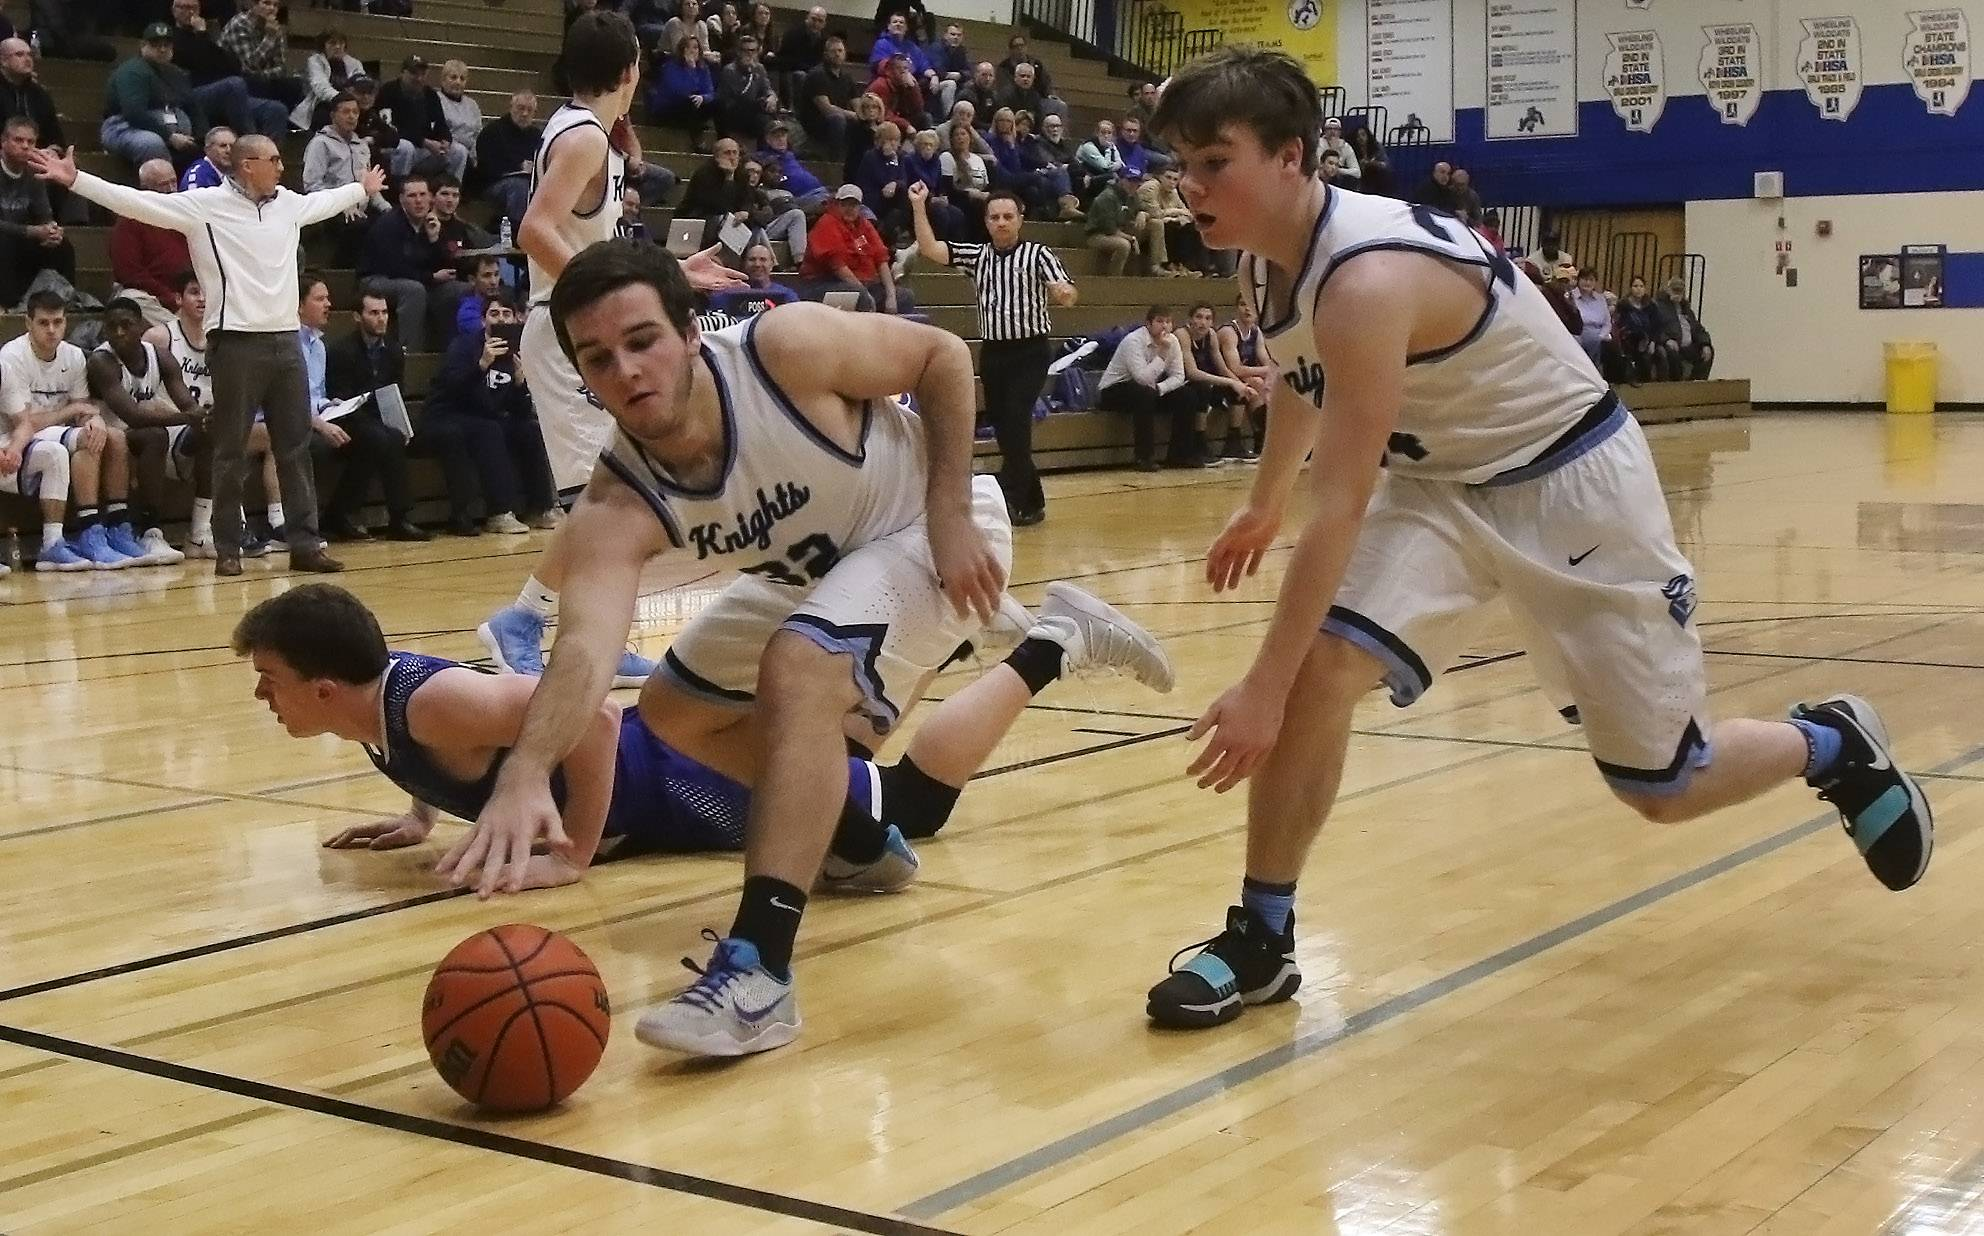 Prospect players Zach Matters, left, and T.J. Johannesen go for a loose ball during Thursday's matchup against Geneva at Wheeling's Hardwood Classic.